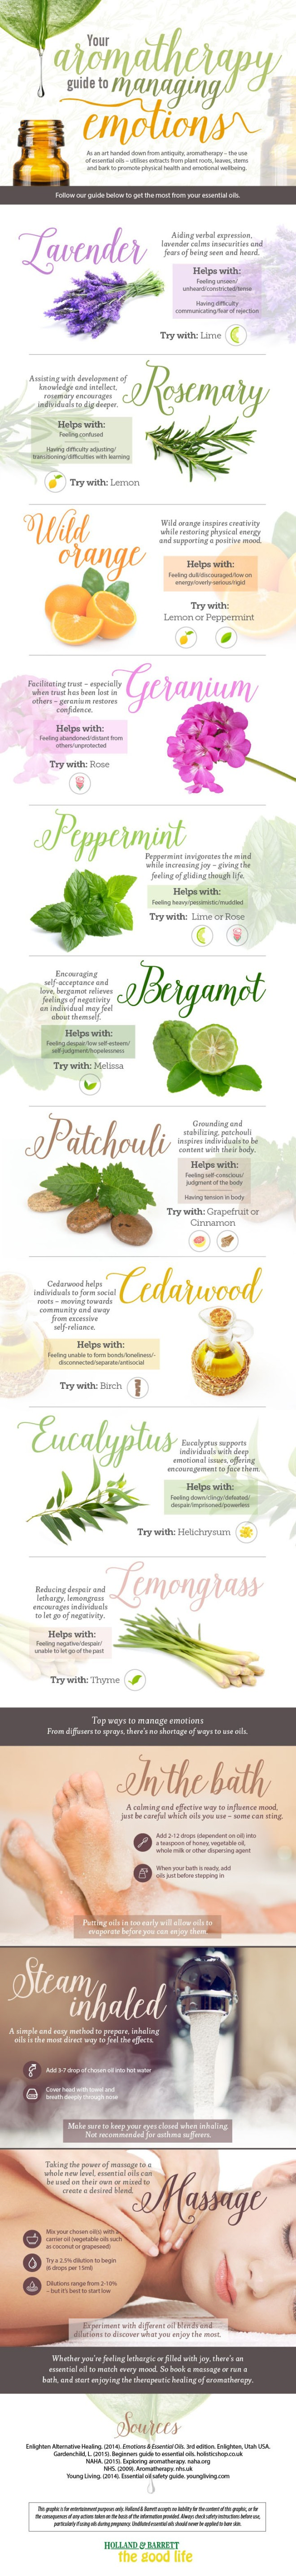 Aromatherapy-guide-to-boosting-your-emotional-health-2